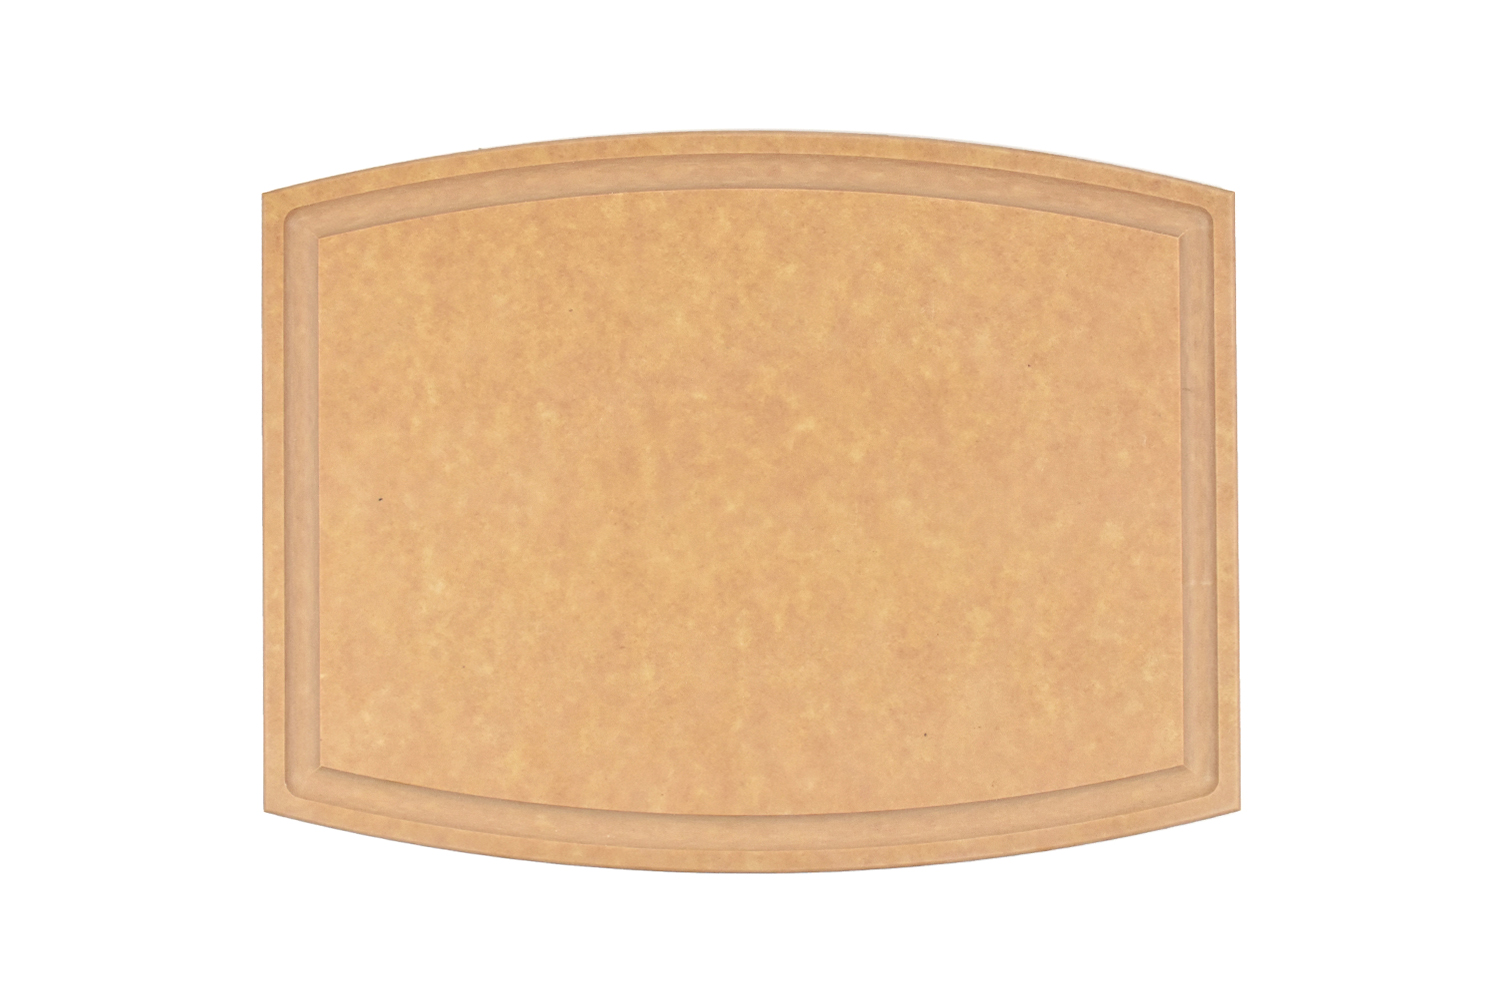 Arched cutting board with juice groove (Dishwasher safe)